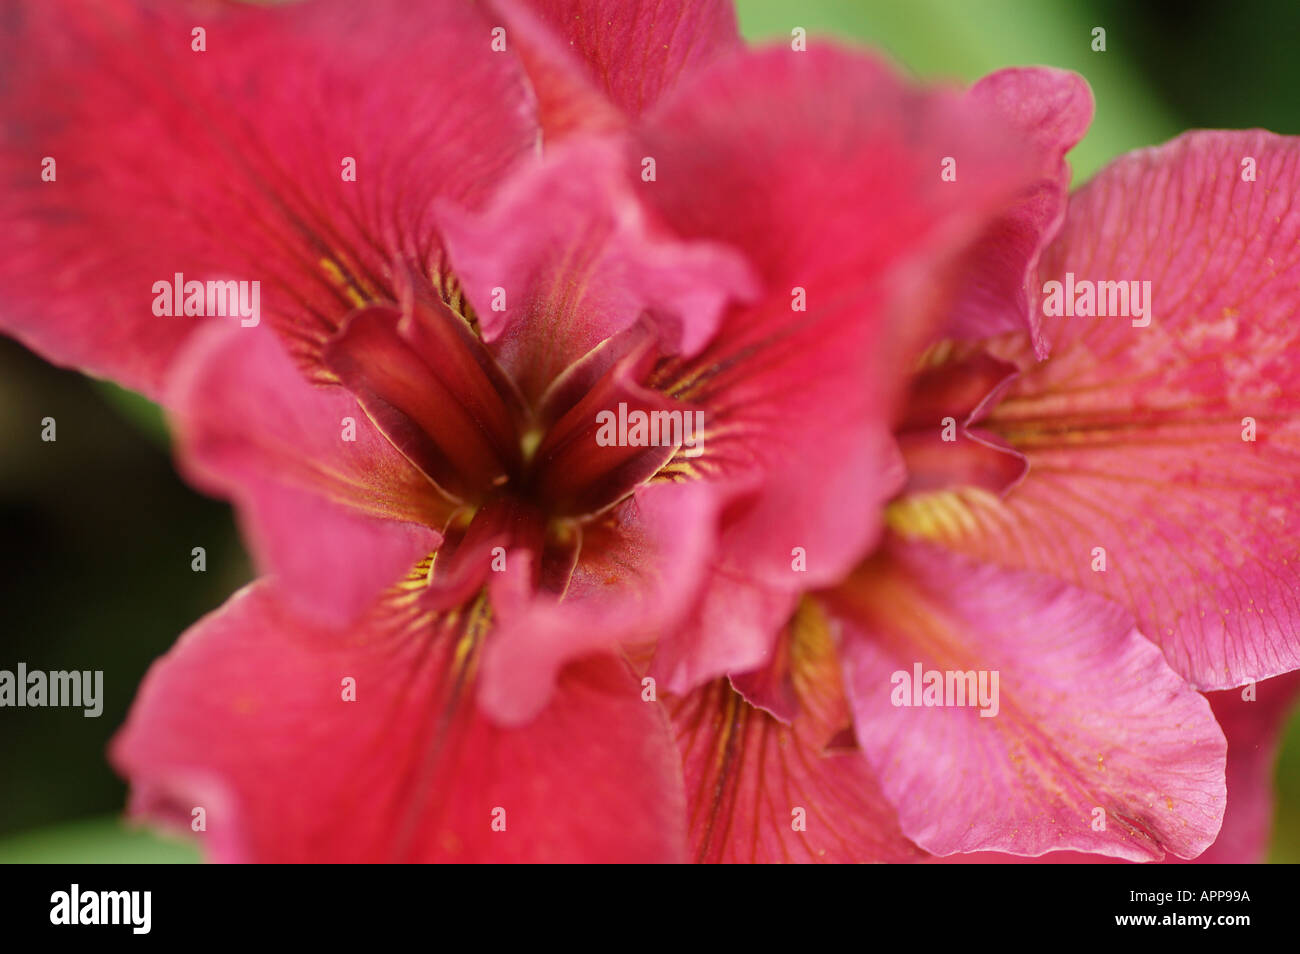 Scientific Classification Iris Is The Common Name For The Family